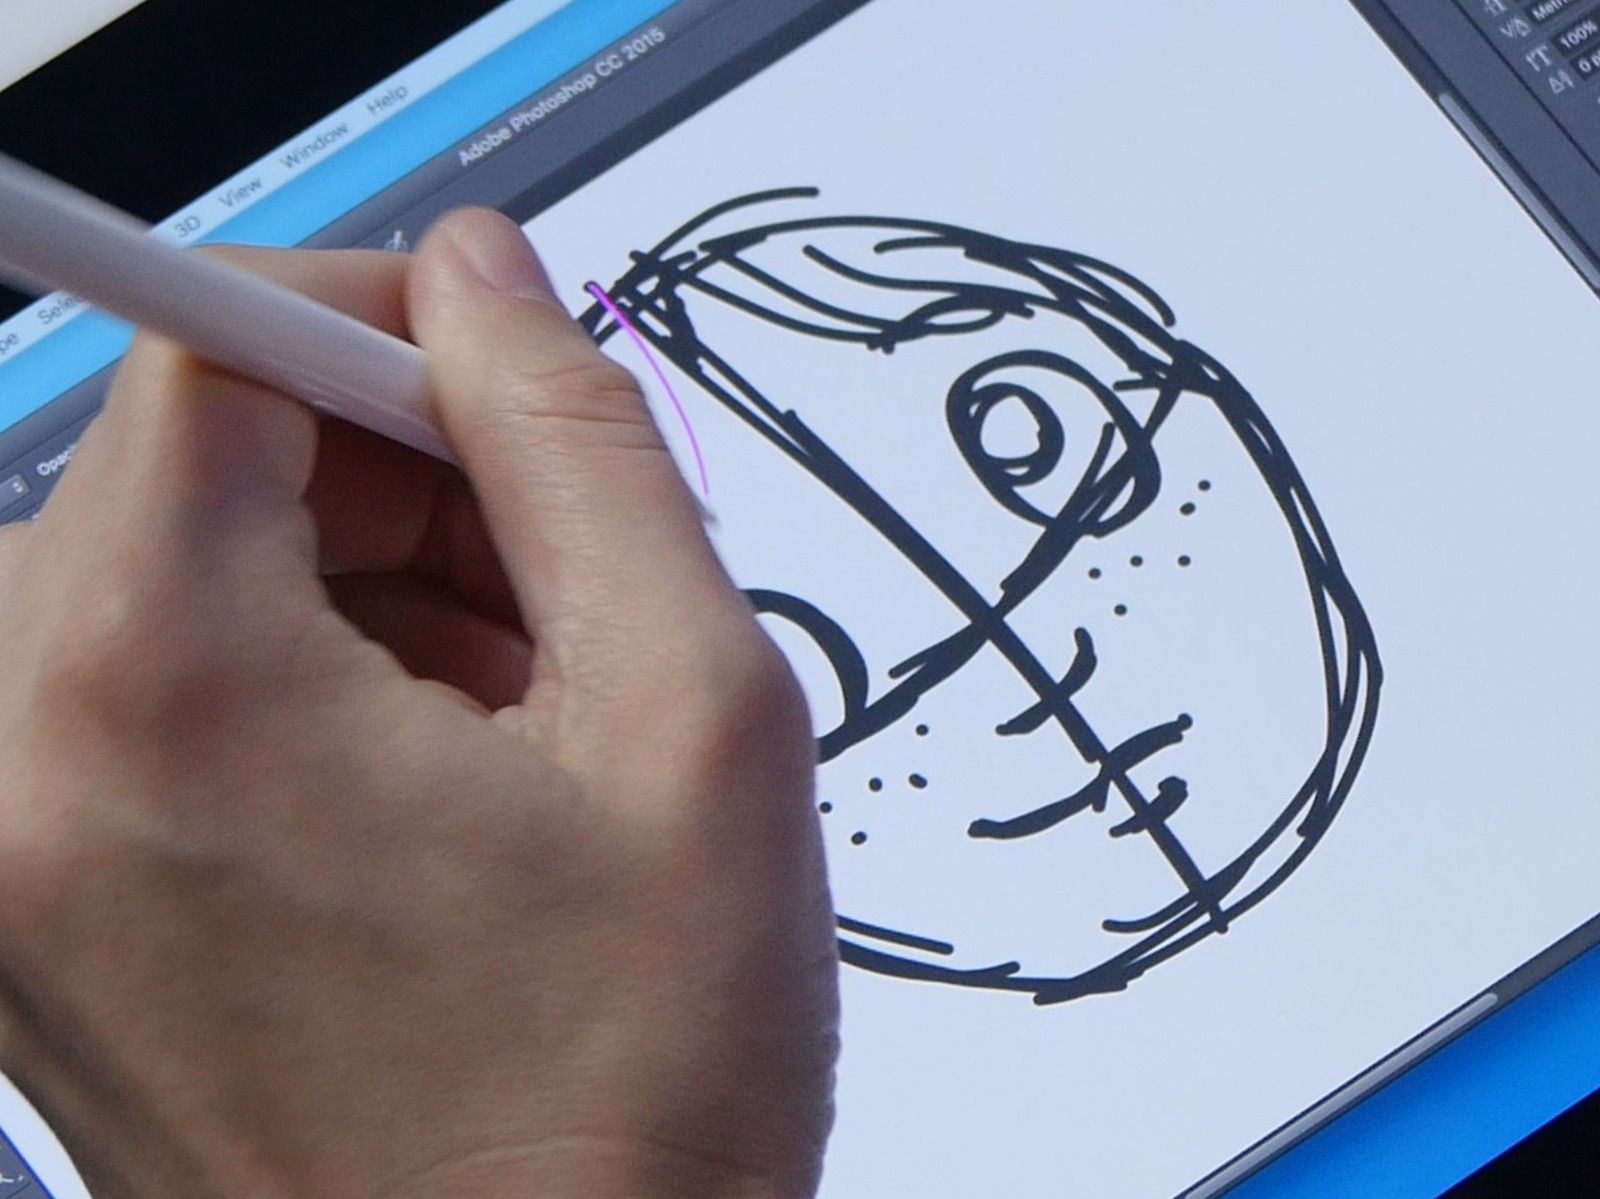 Which is better for artists and writers? Apple pencil